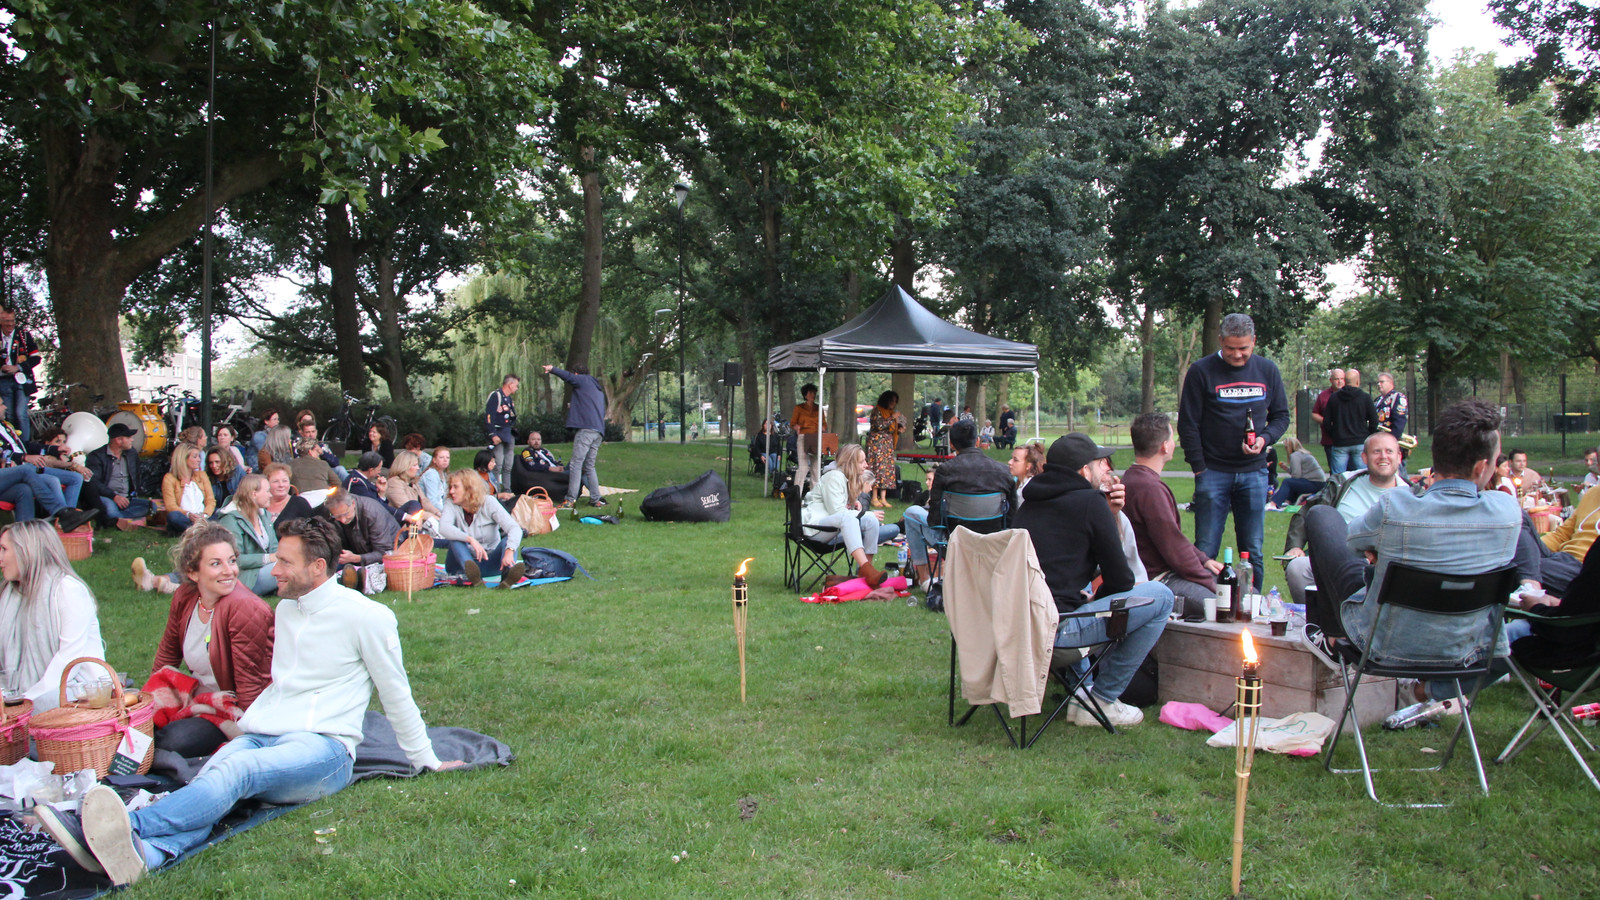 Picknick in het Julianapark in Veghel.